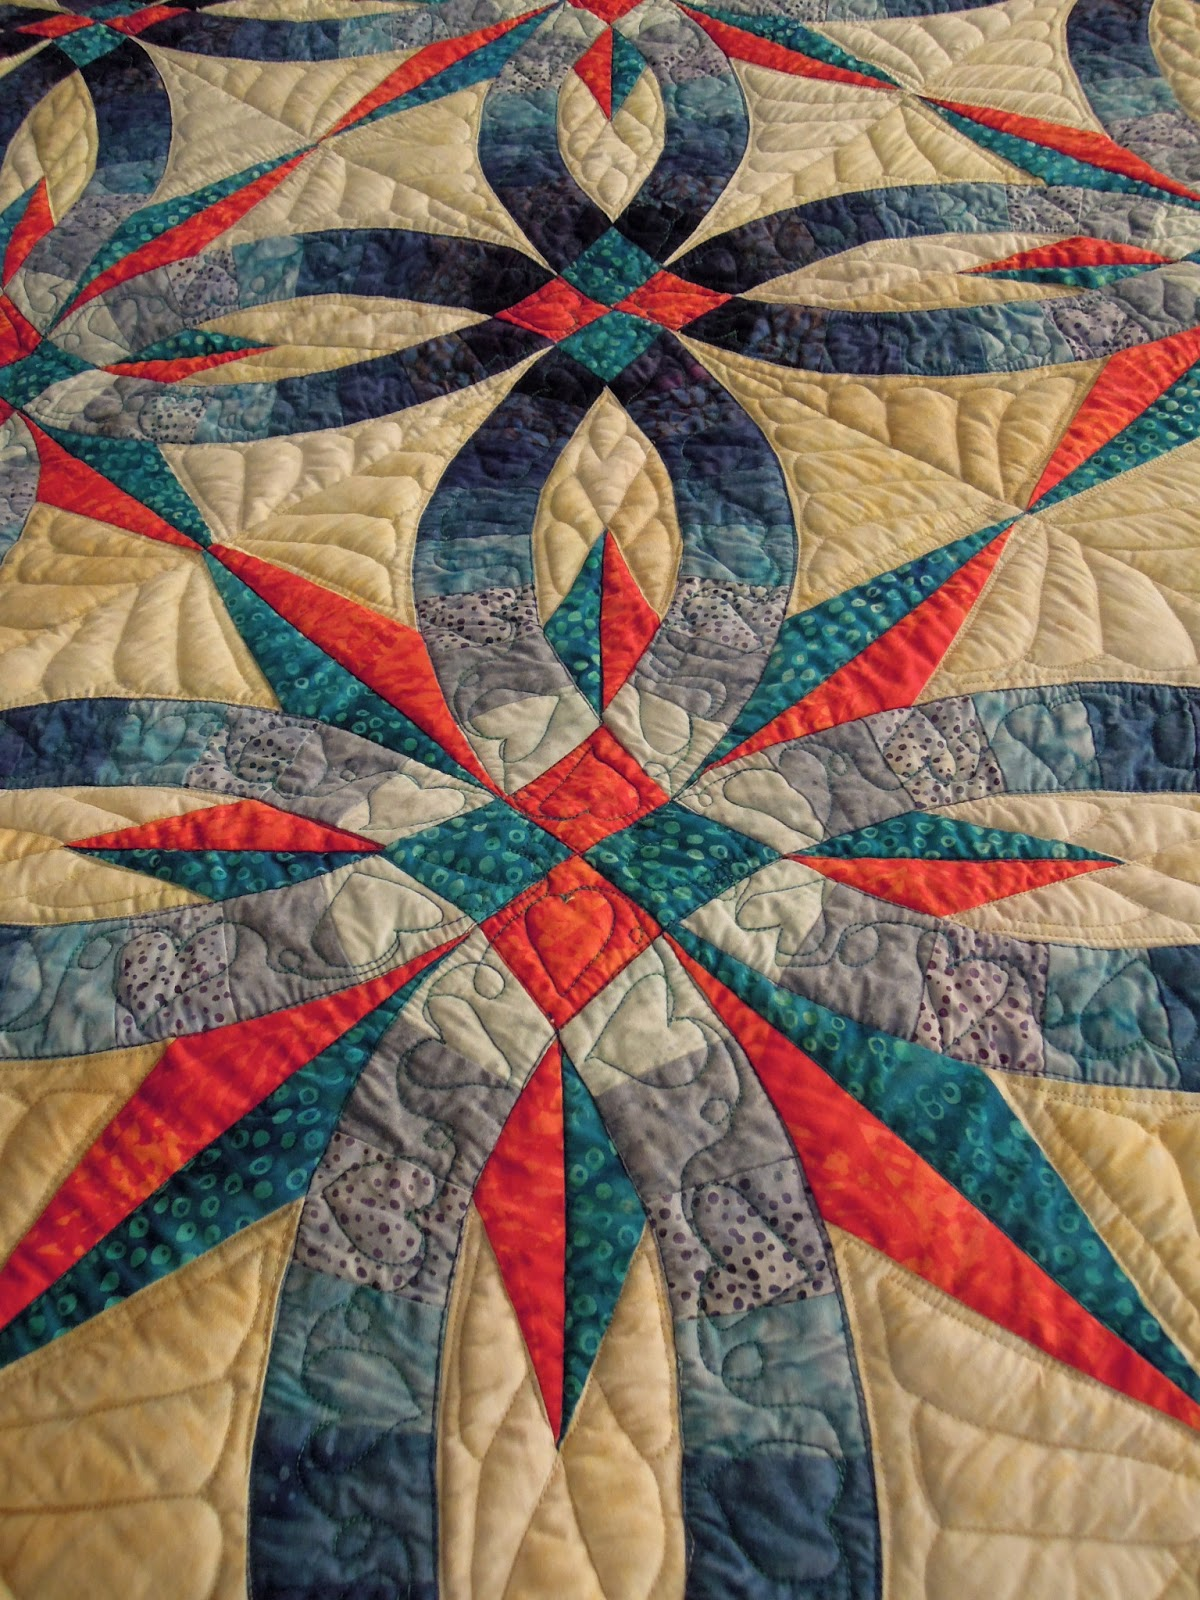 Quilt Inspiration Wedding Ring quilts part 2 Judy Niemeyer Designs